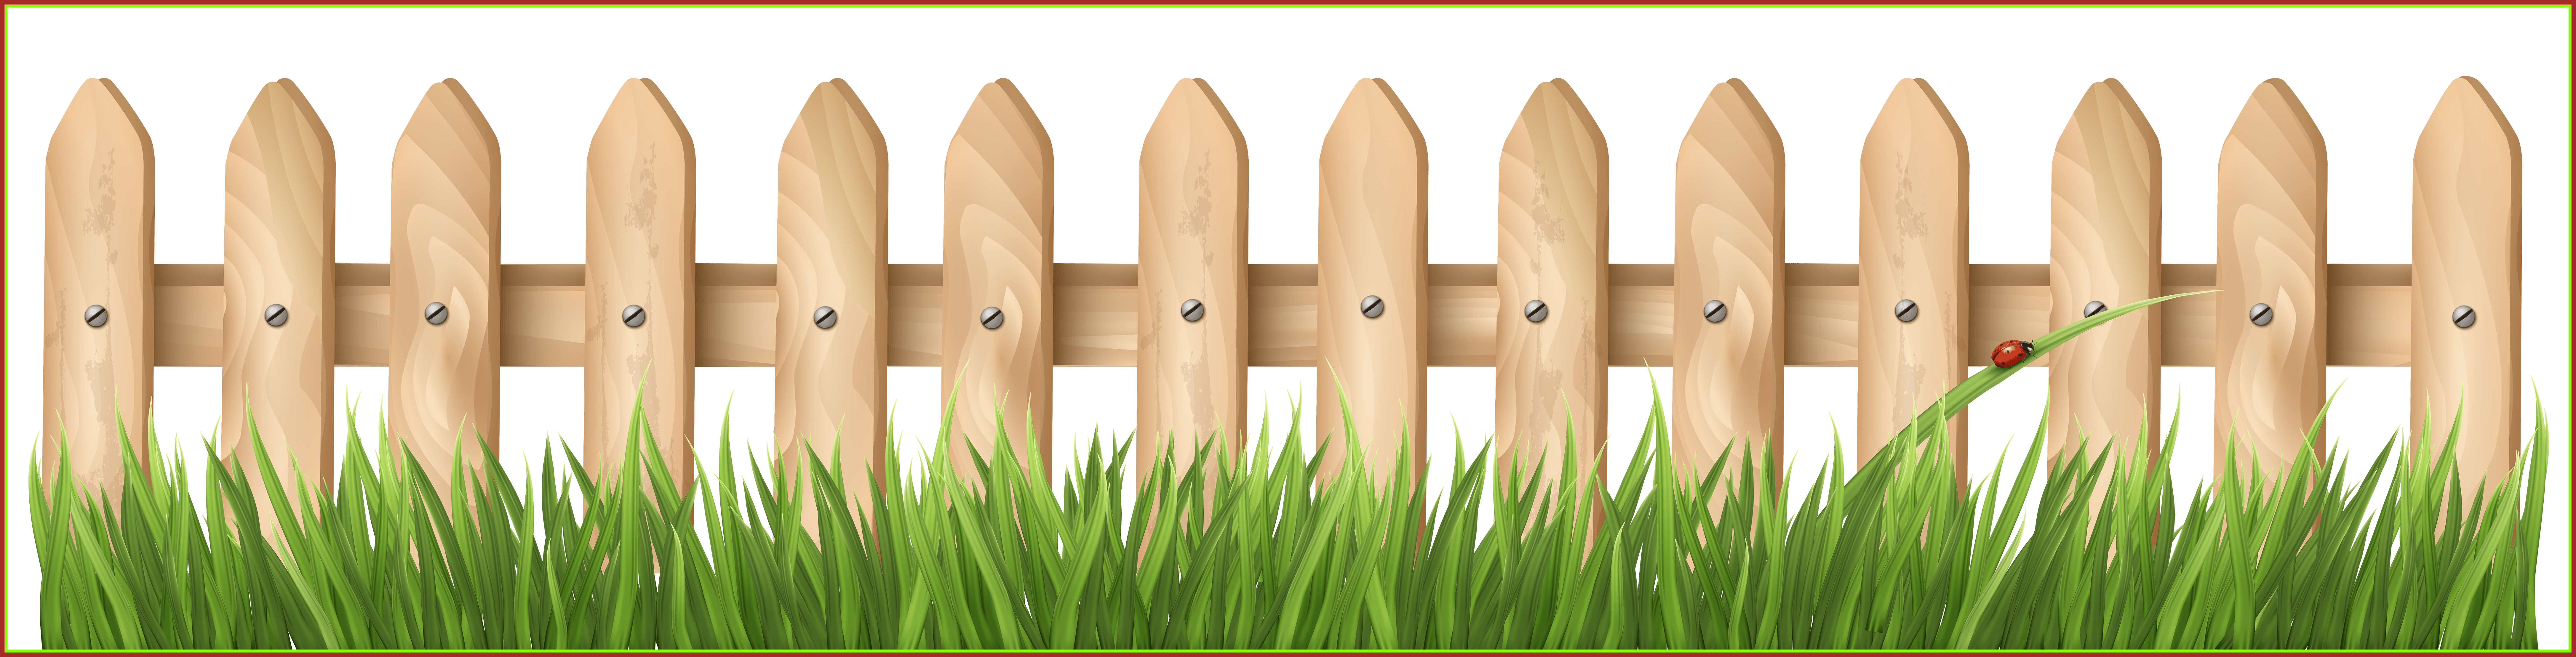 Clipart grass divider. Amazing with transparent png